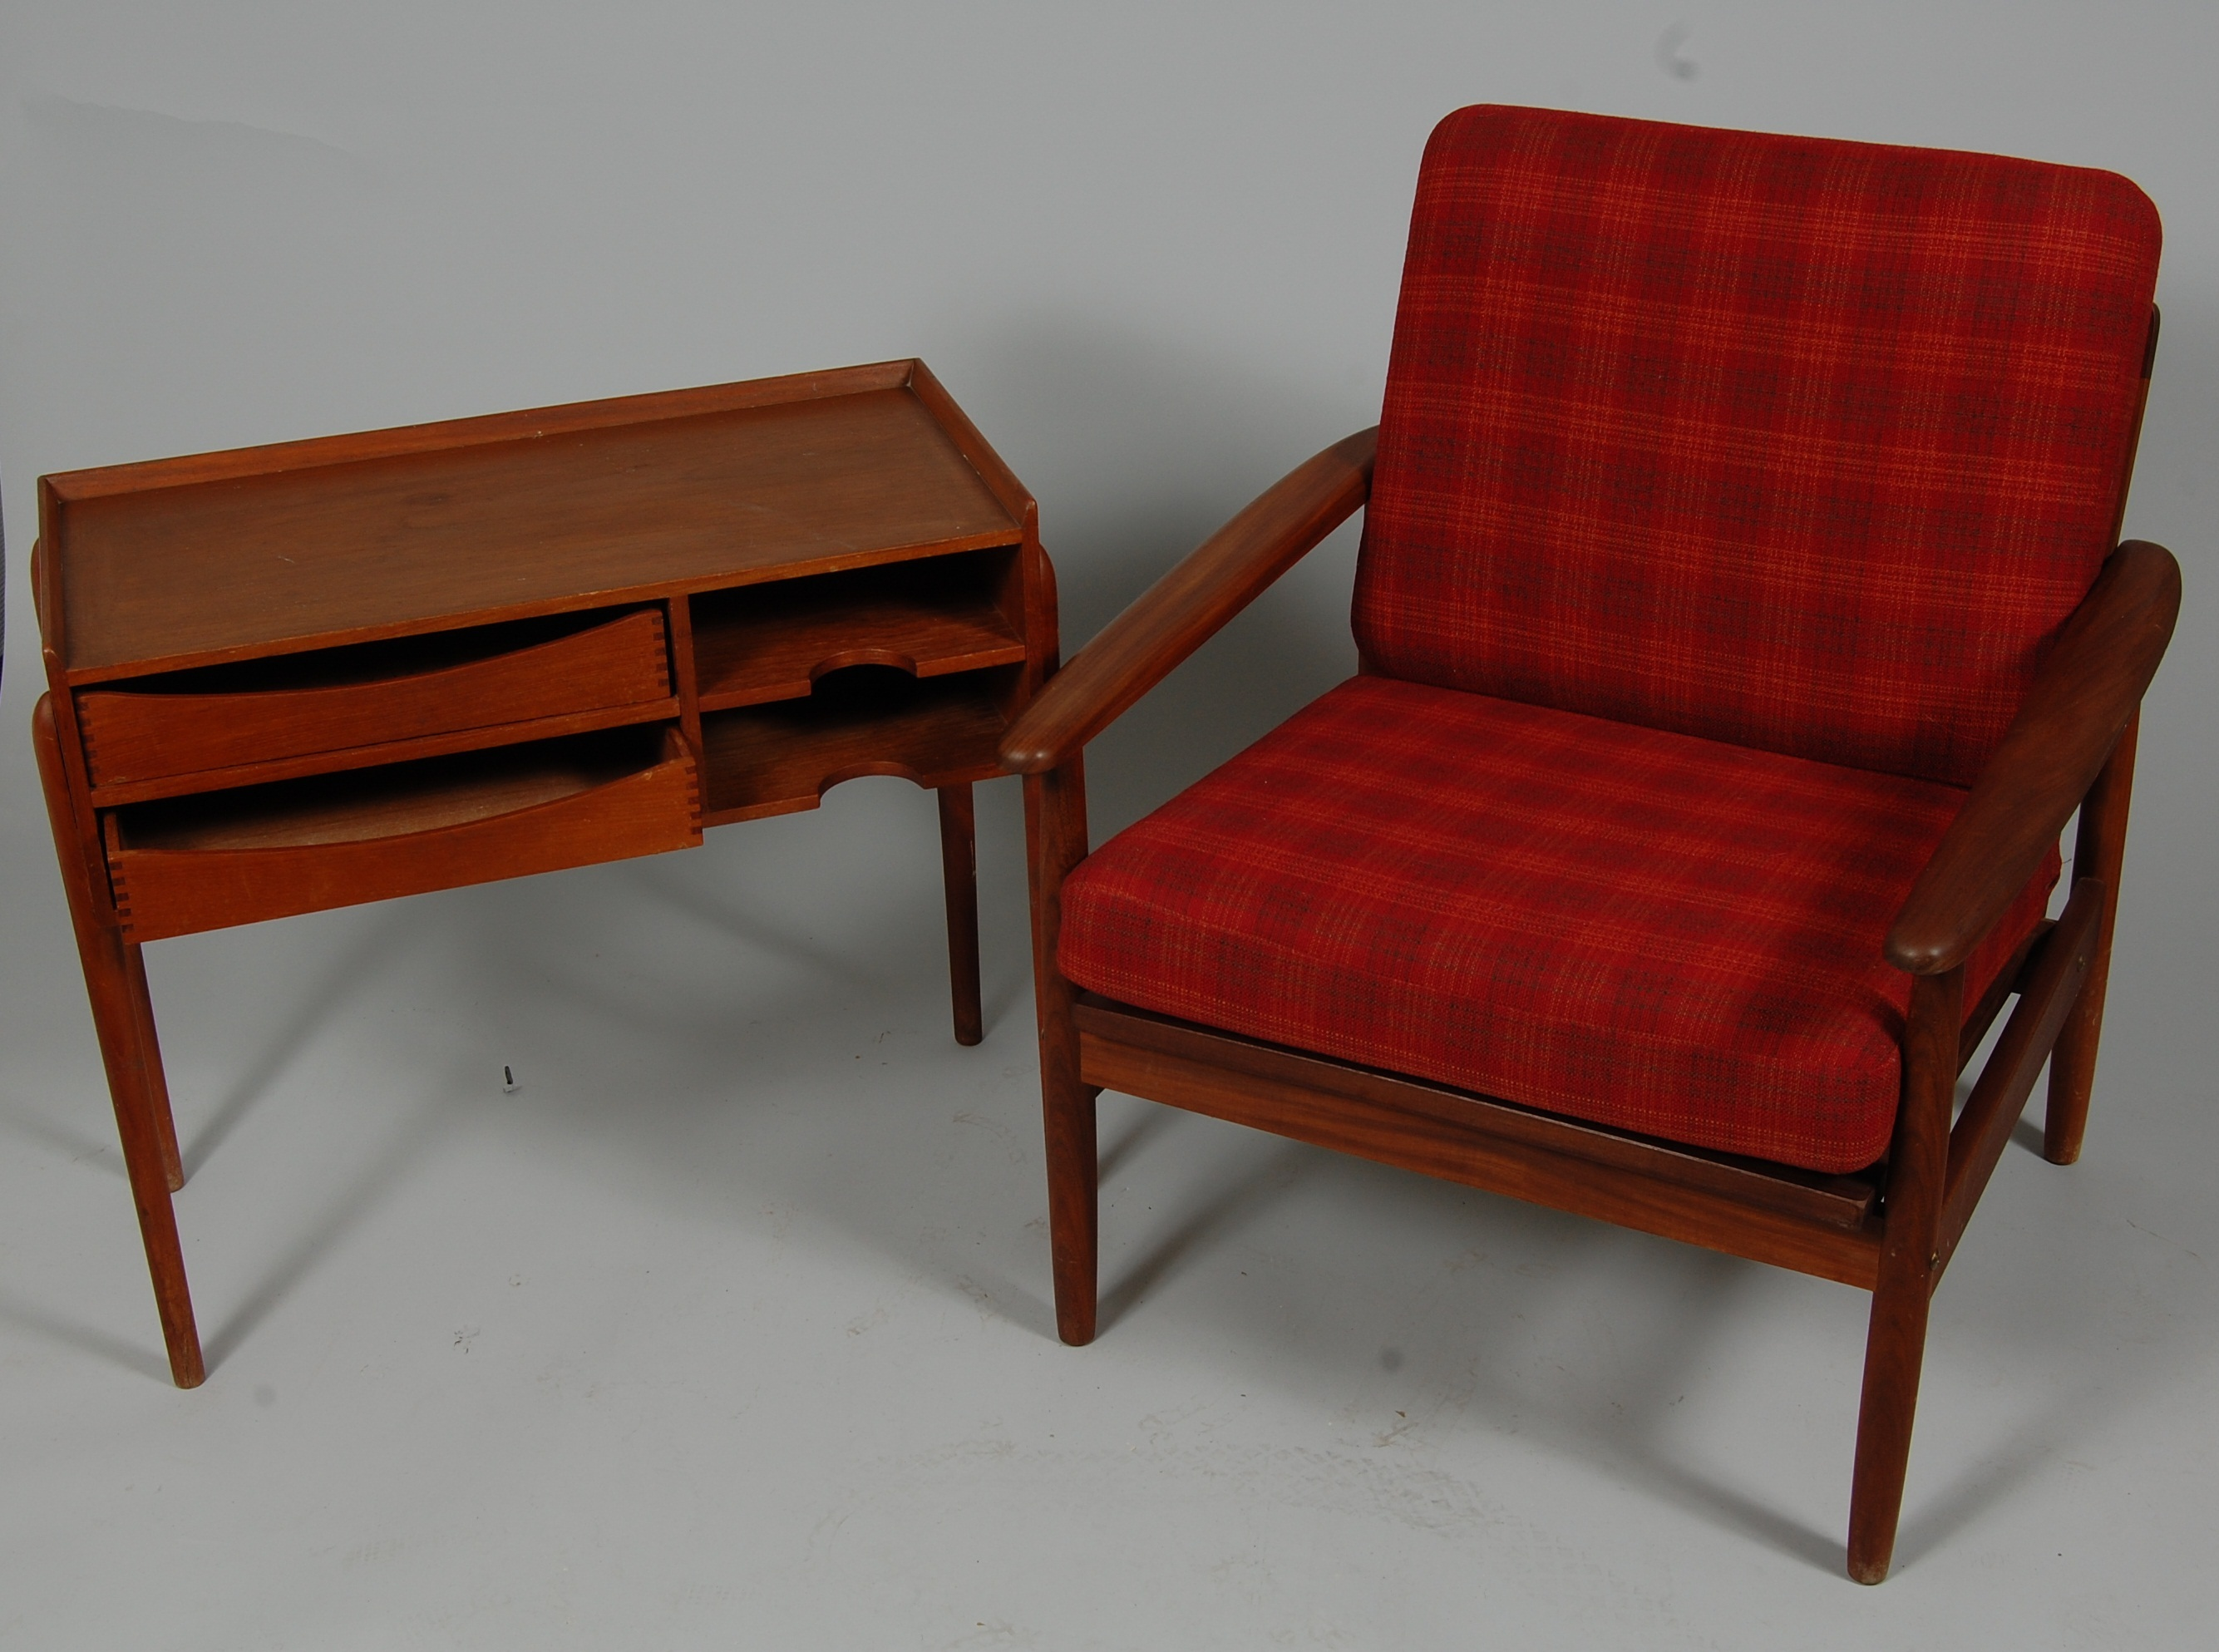 Parti Mobler 2 Delar Teak 1950 60 Tal Furniture Other Auctionet